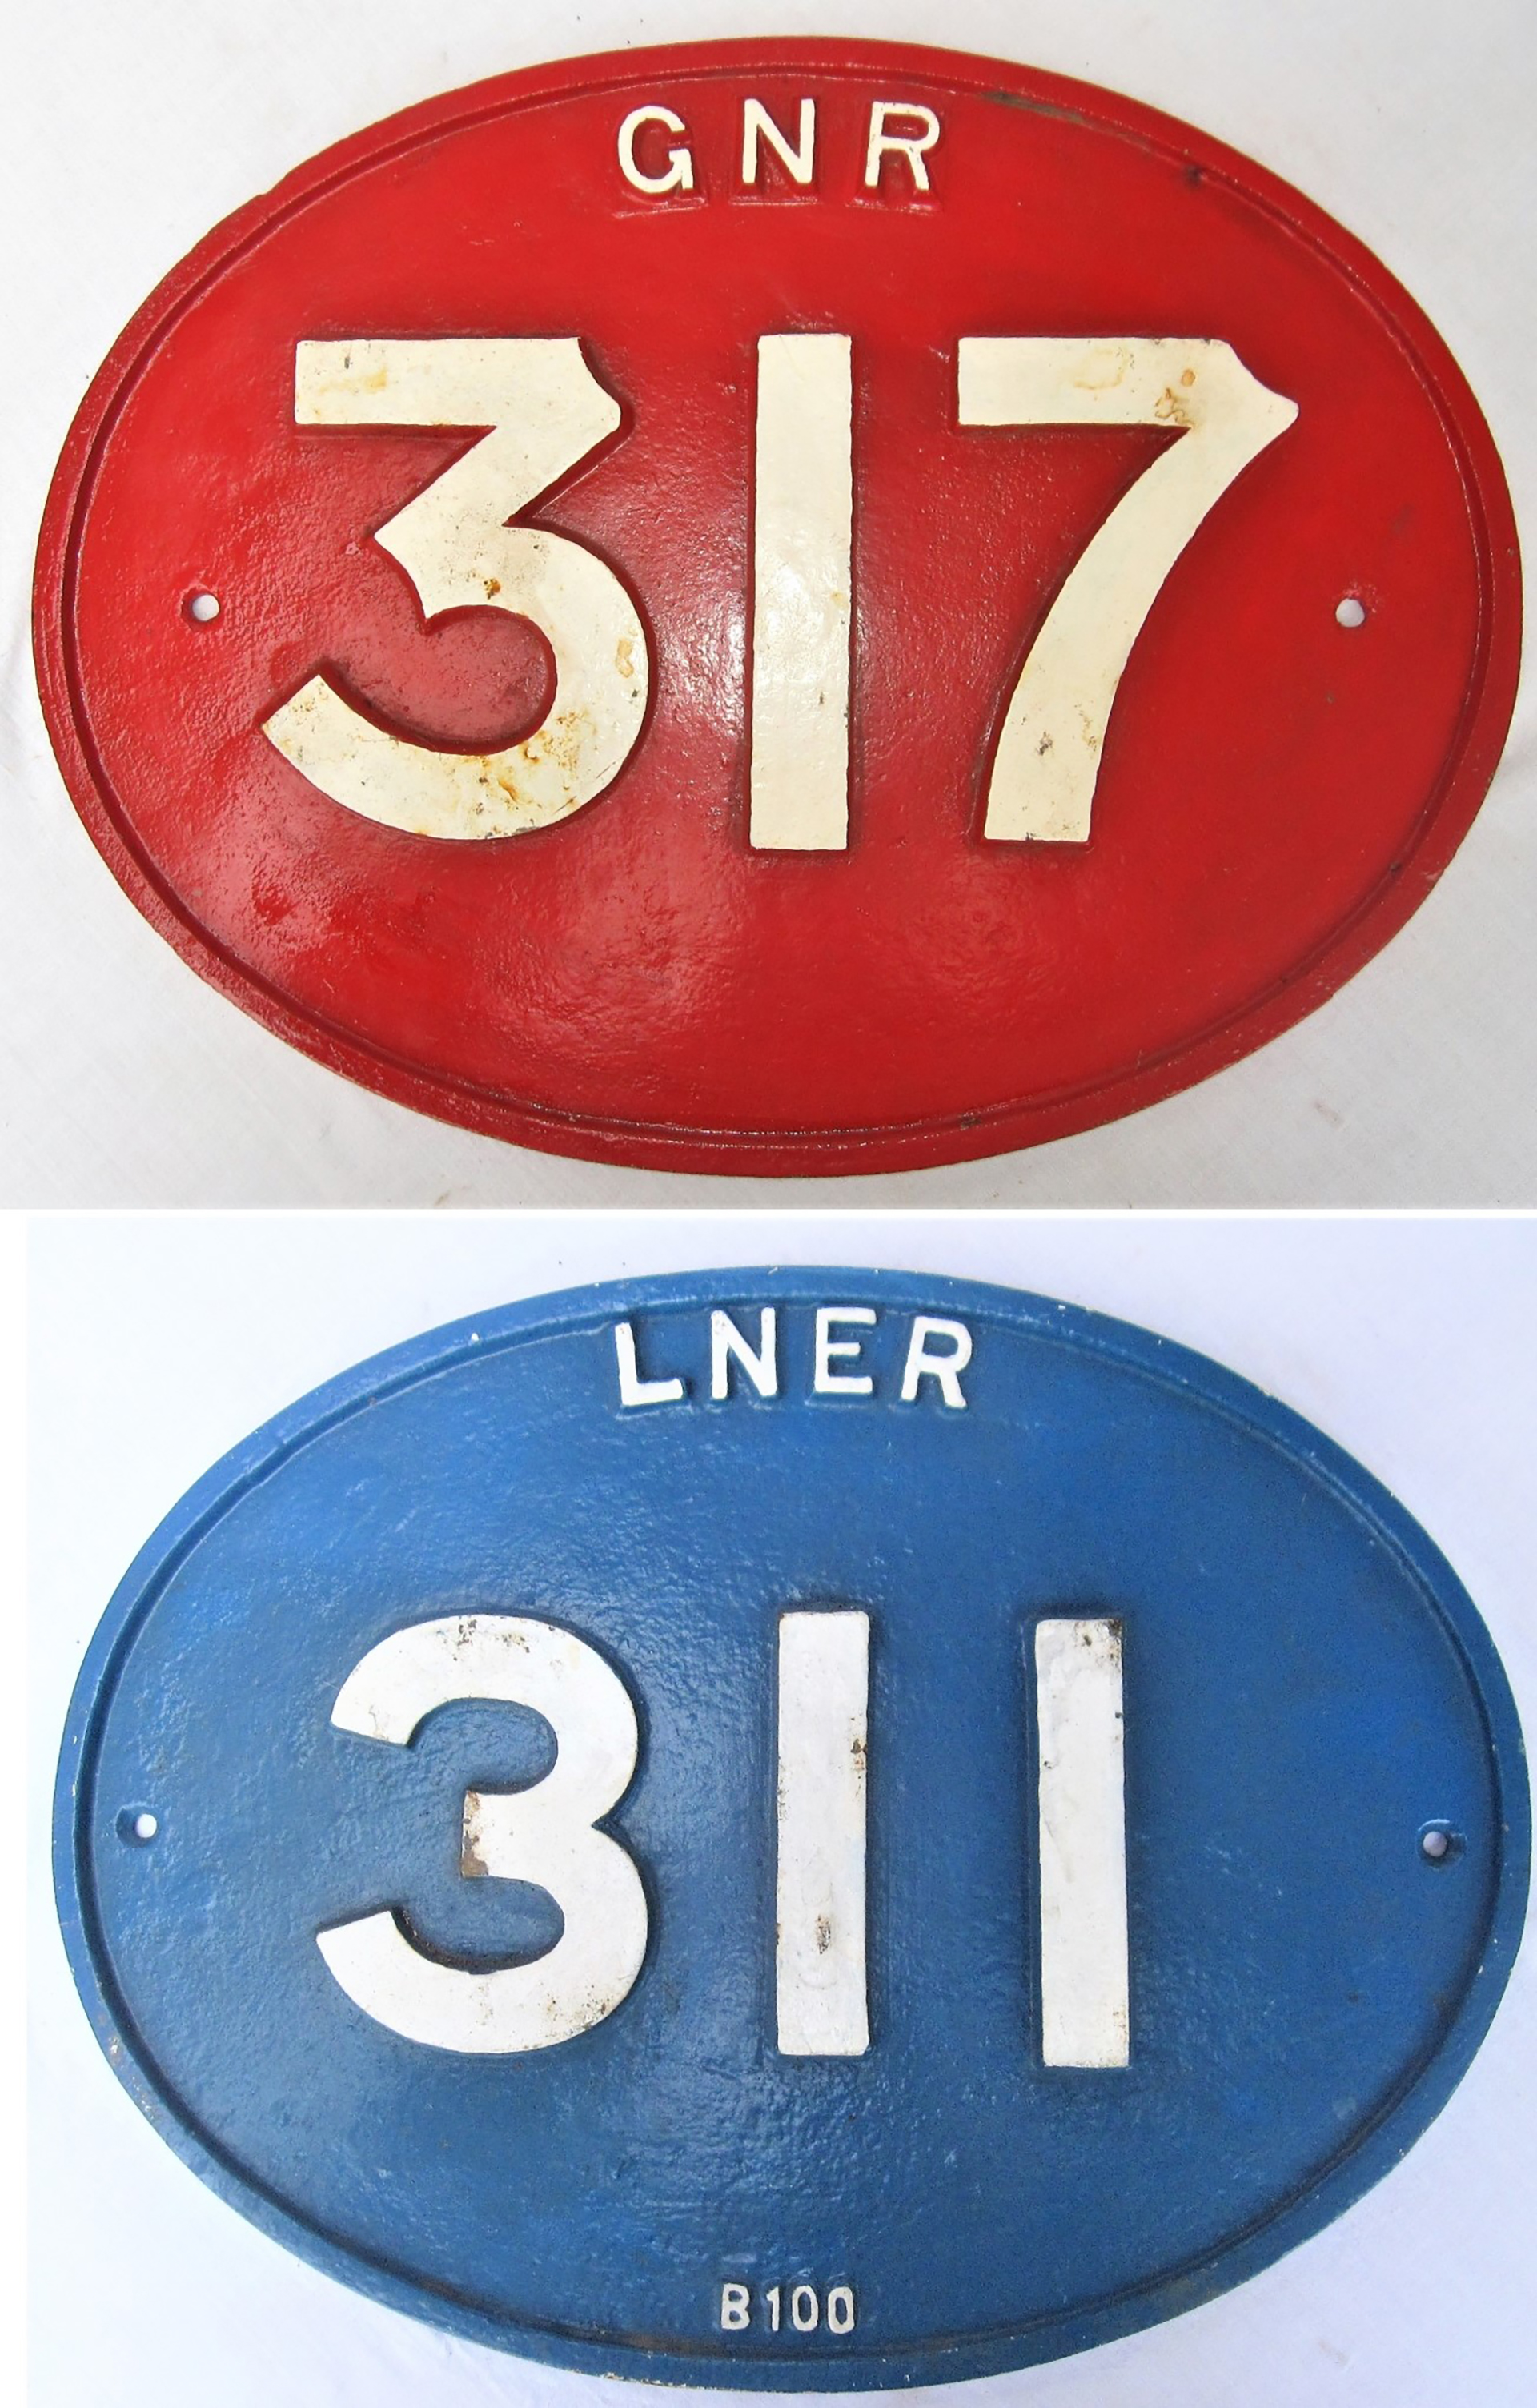 2 x cast iron bridge plates. LNER 311 together with GNR 317. Both repainted.